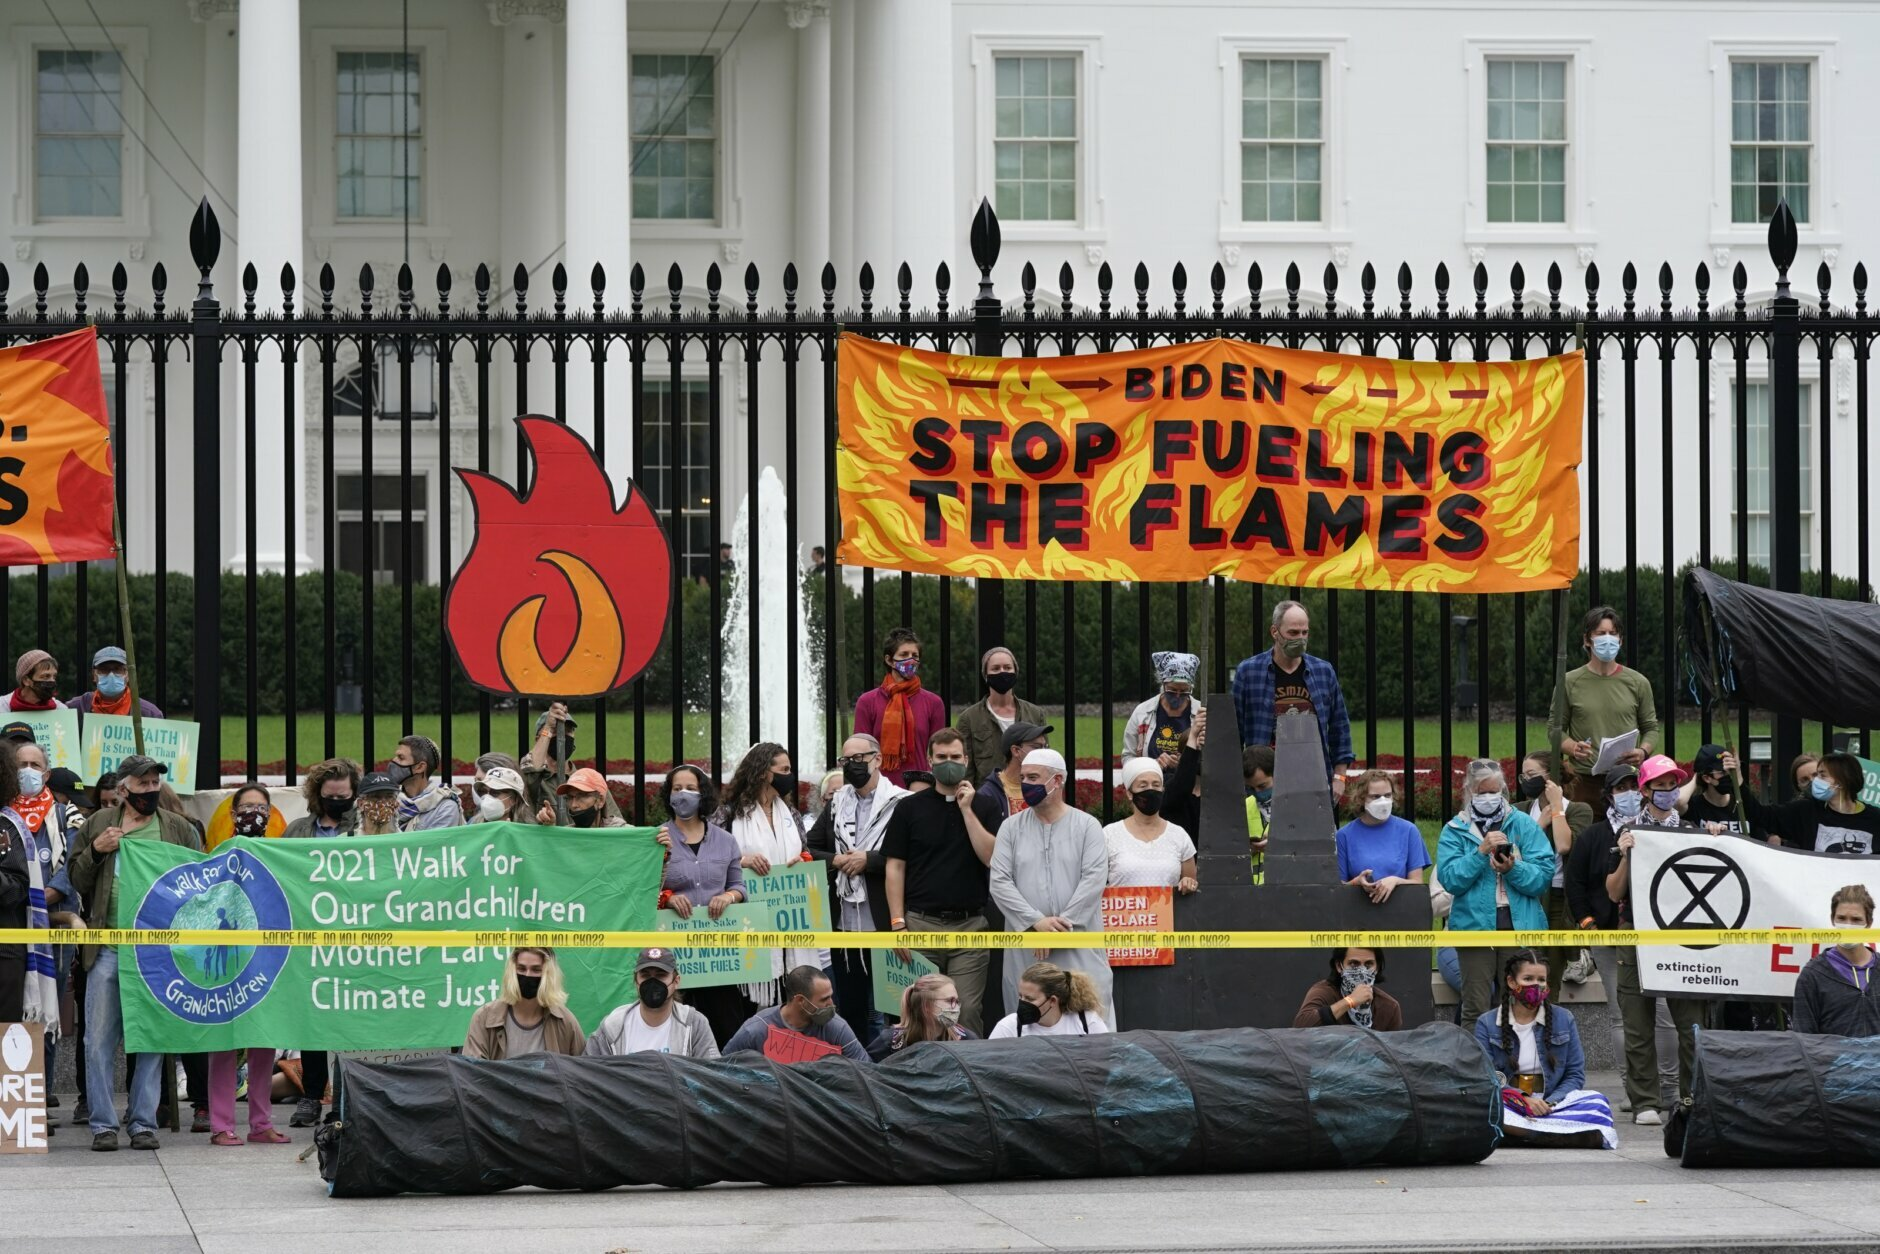 Protesters gather to urge the Biden administration to do more to combat climate change and ban fossil fuels outside the White House in Washington on Tuesday, October 12, 2021. (AP Photo / Patrick Semansky)